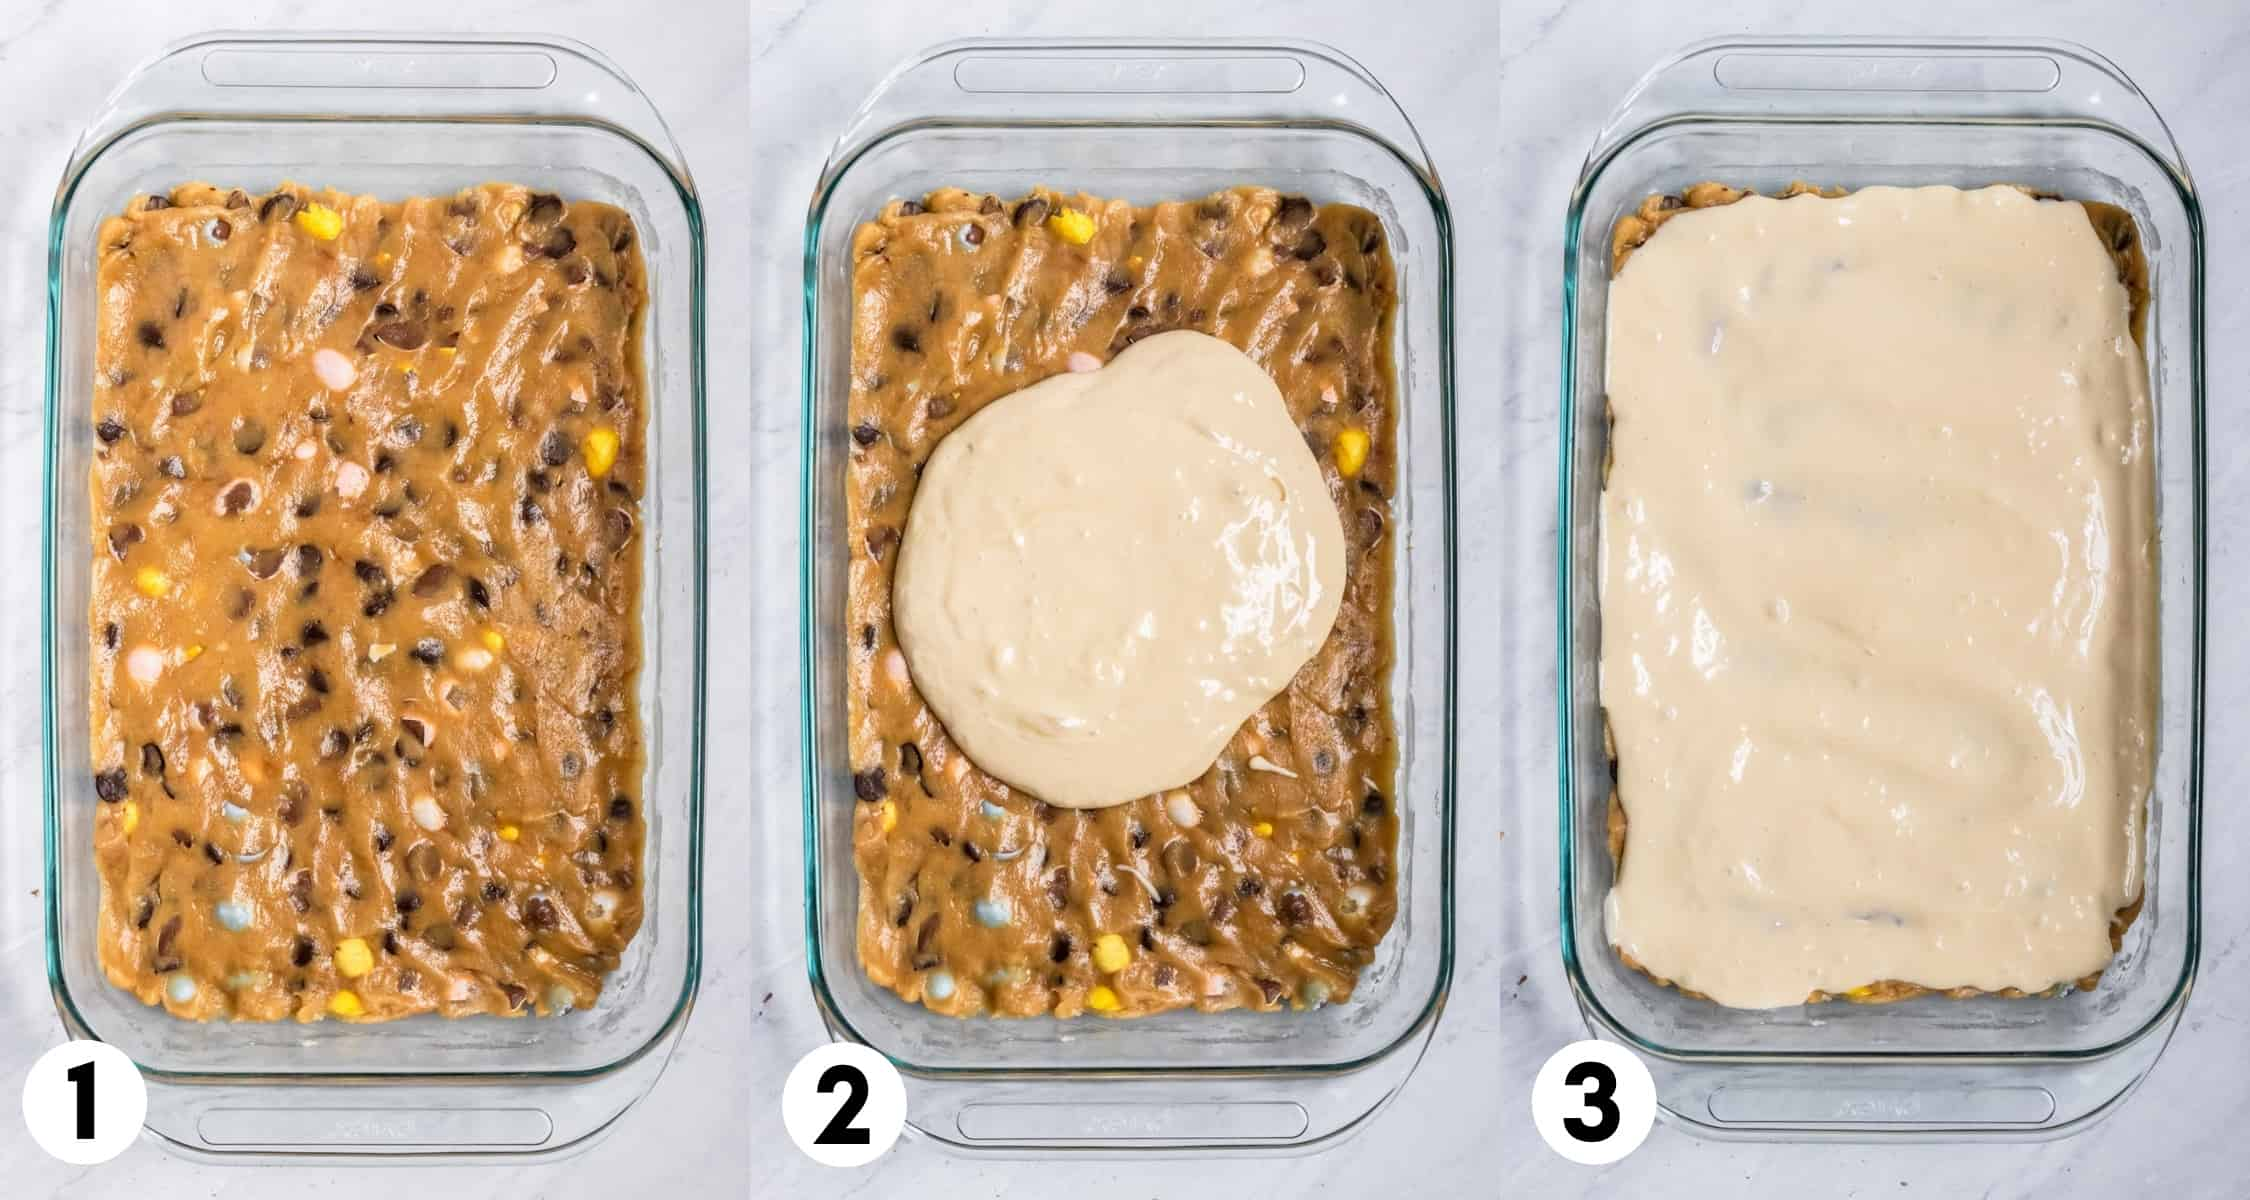 Mini egg cookie bar dough and cheesecake layer in baking pan.